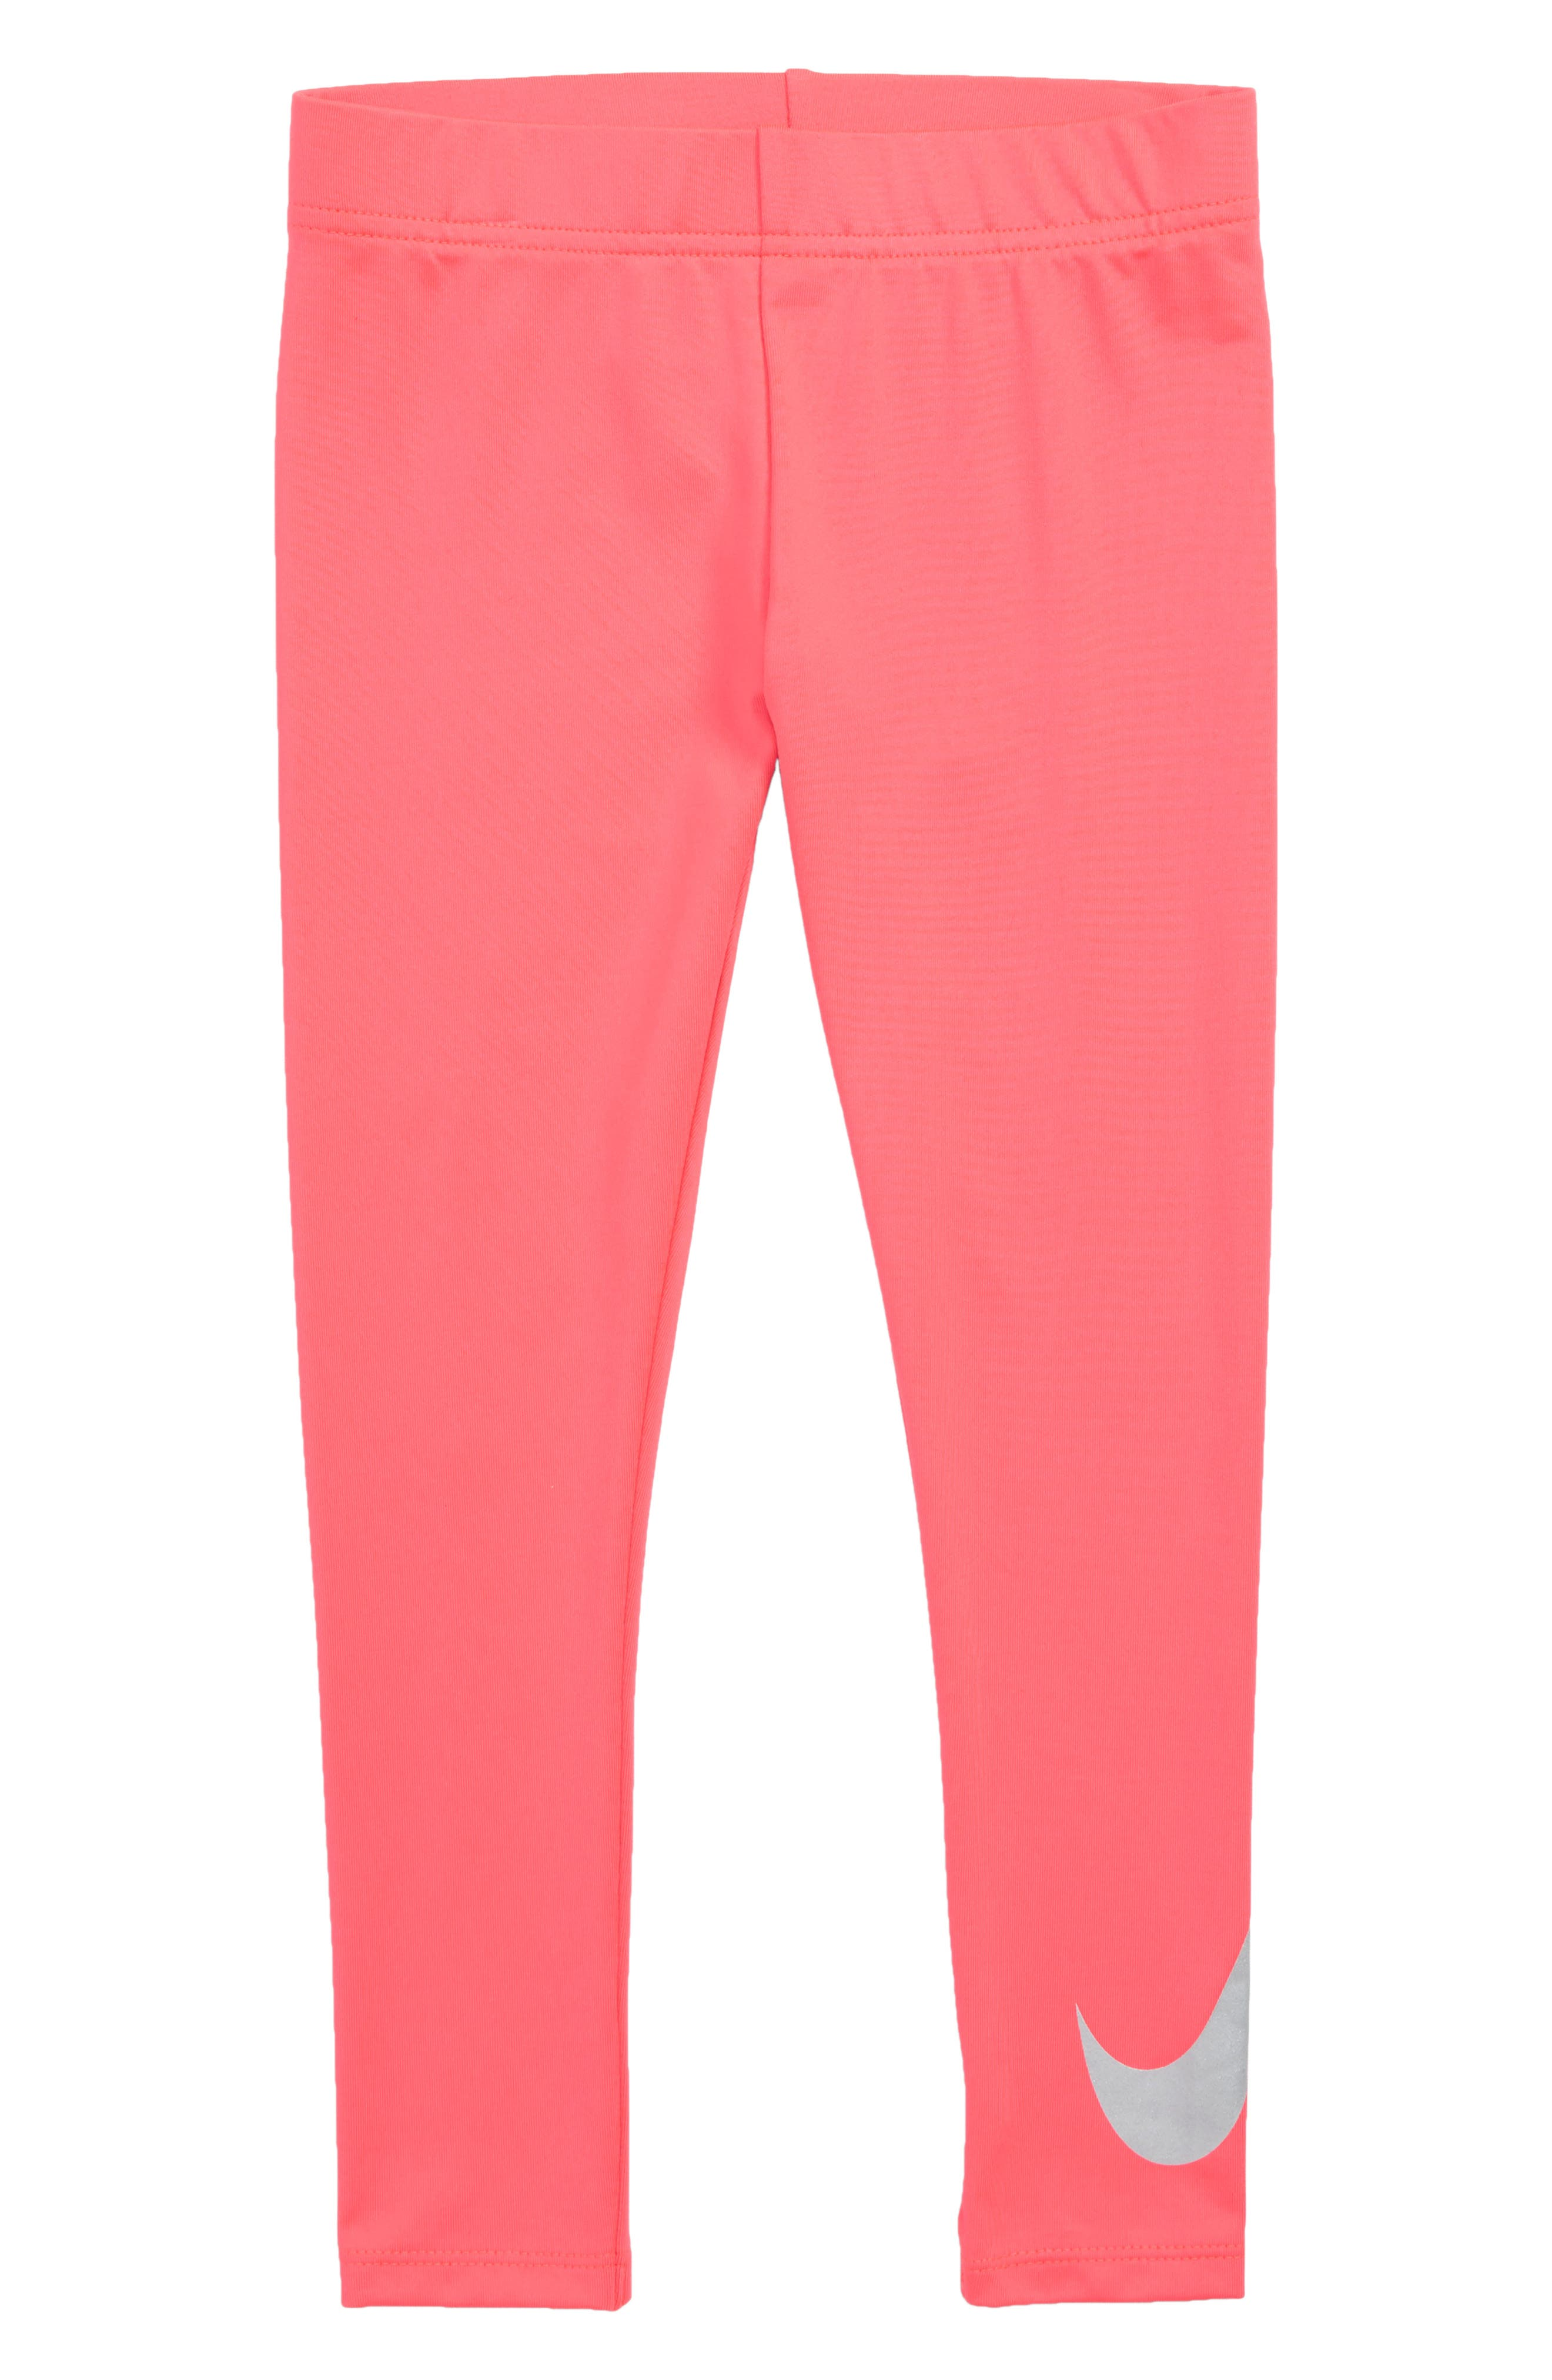 Dry Iridescent Leggings,                             Main thumbnail 1, color,                             RACER PINK